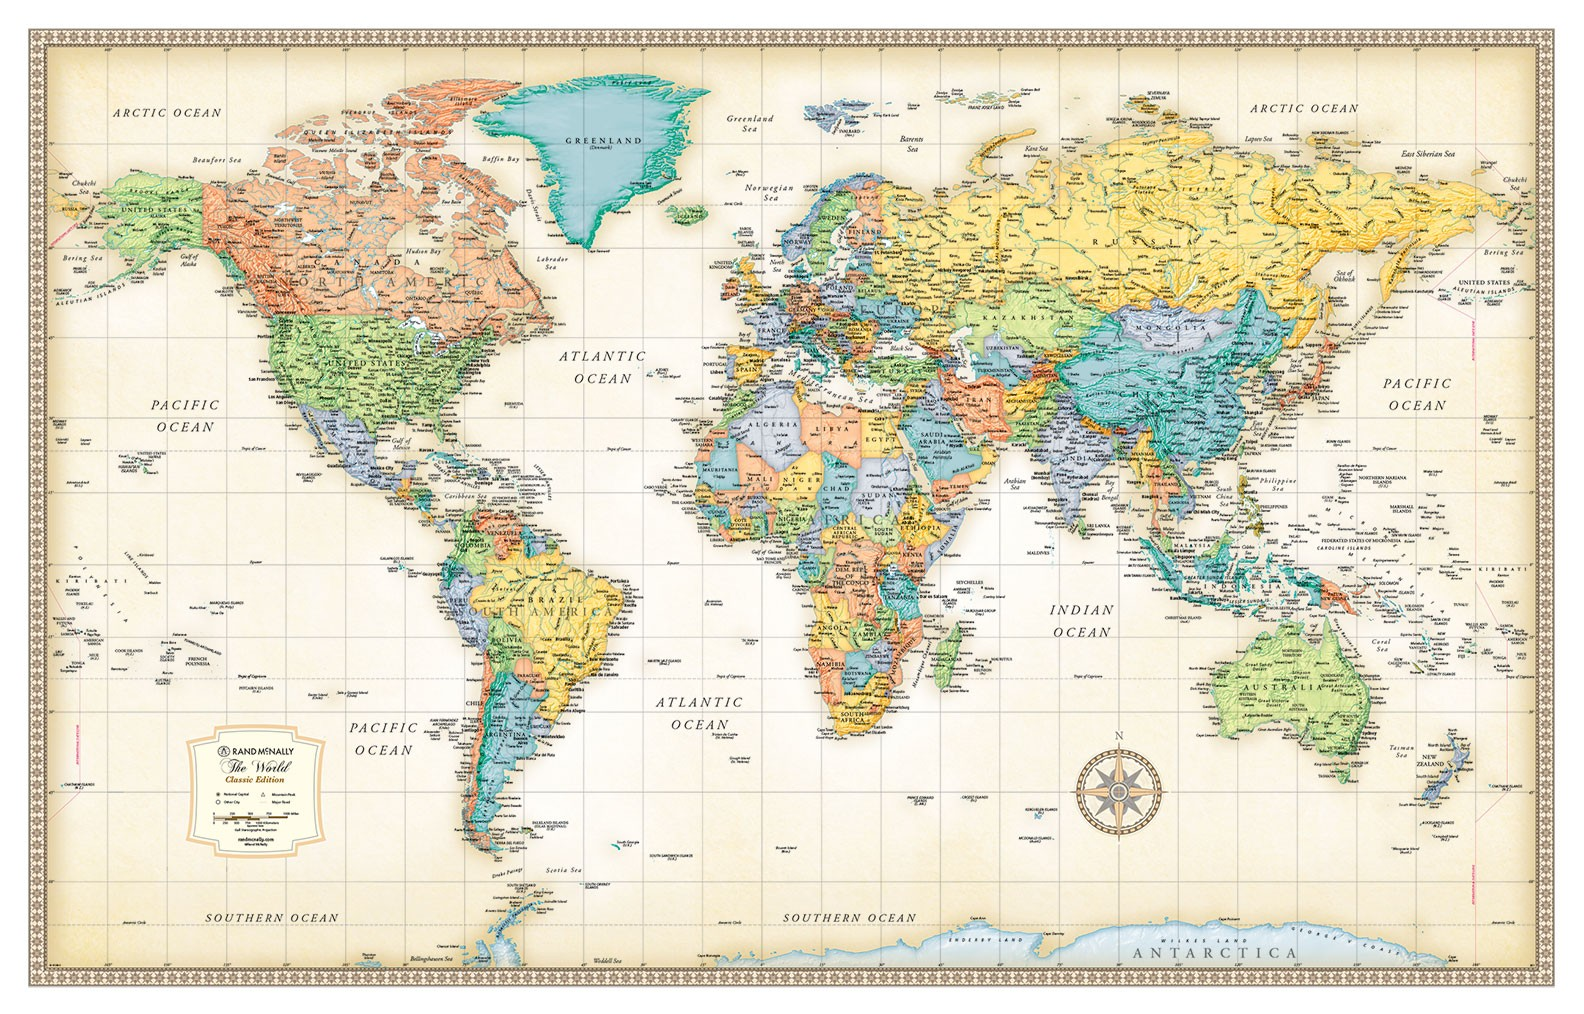 Rmc classic edition world wall map poster rmc classic world and usa map wall poster set rmcclassicworldfullsize2015 gumiabroncs